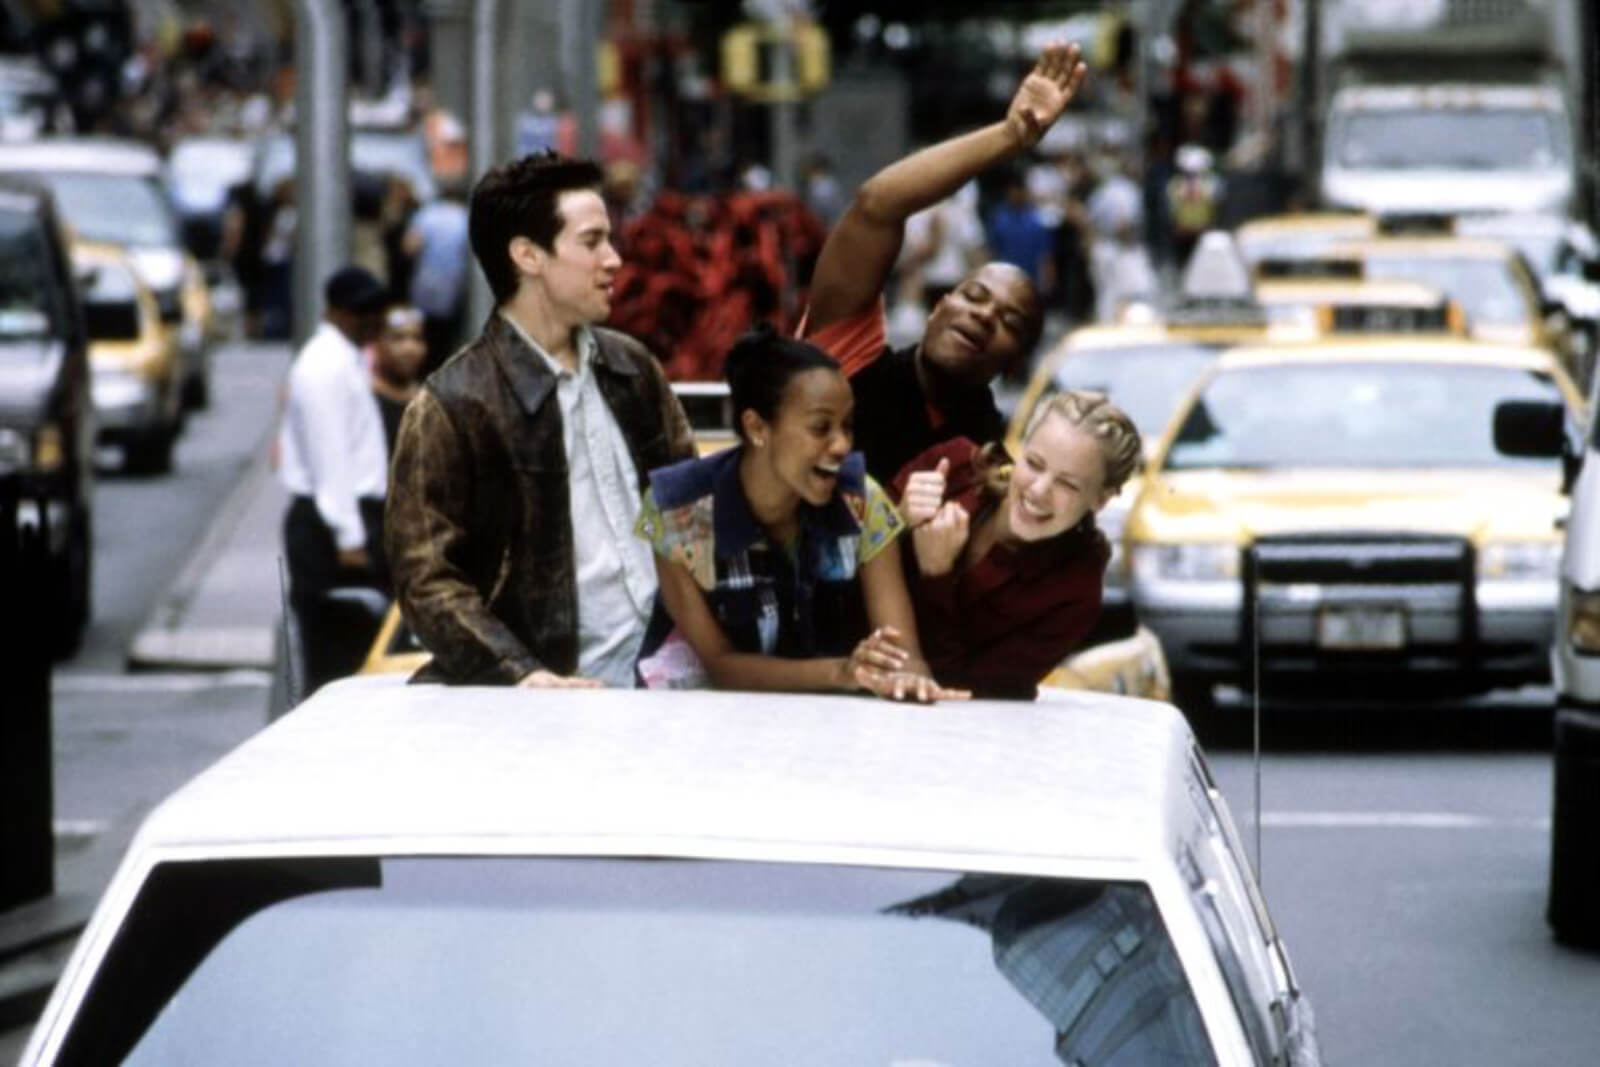 Sascha Radetsky, Zoe Saldana, Shakiem Evans, and Amanda Schull popping out the top of a sun roof in NYC traffic.